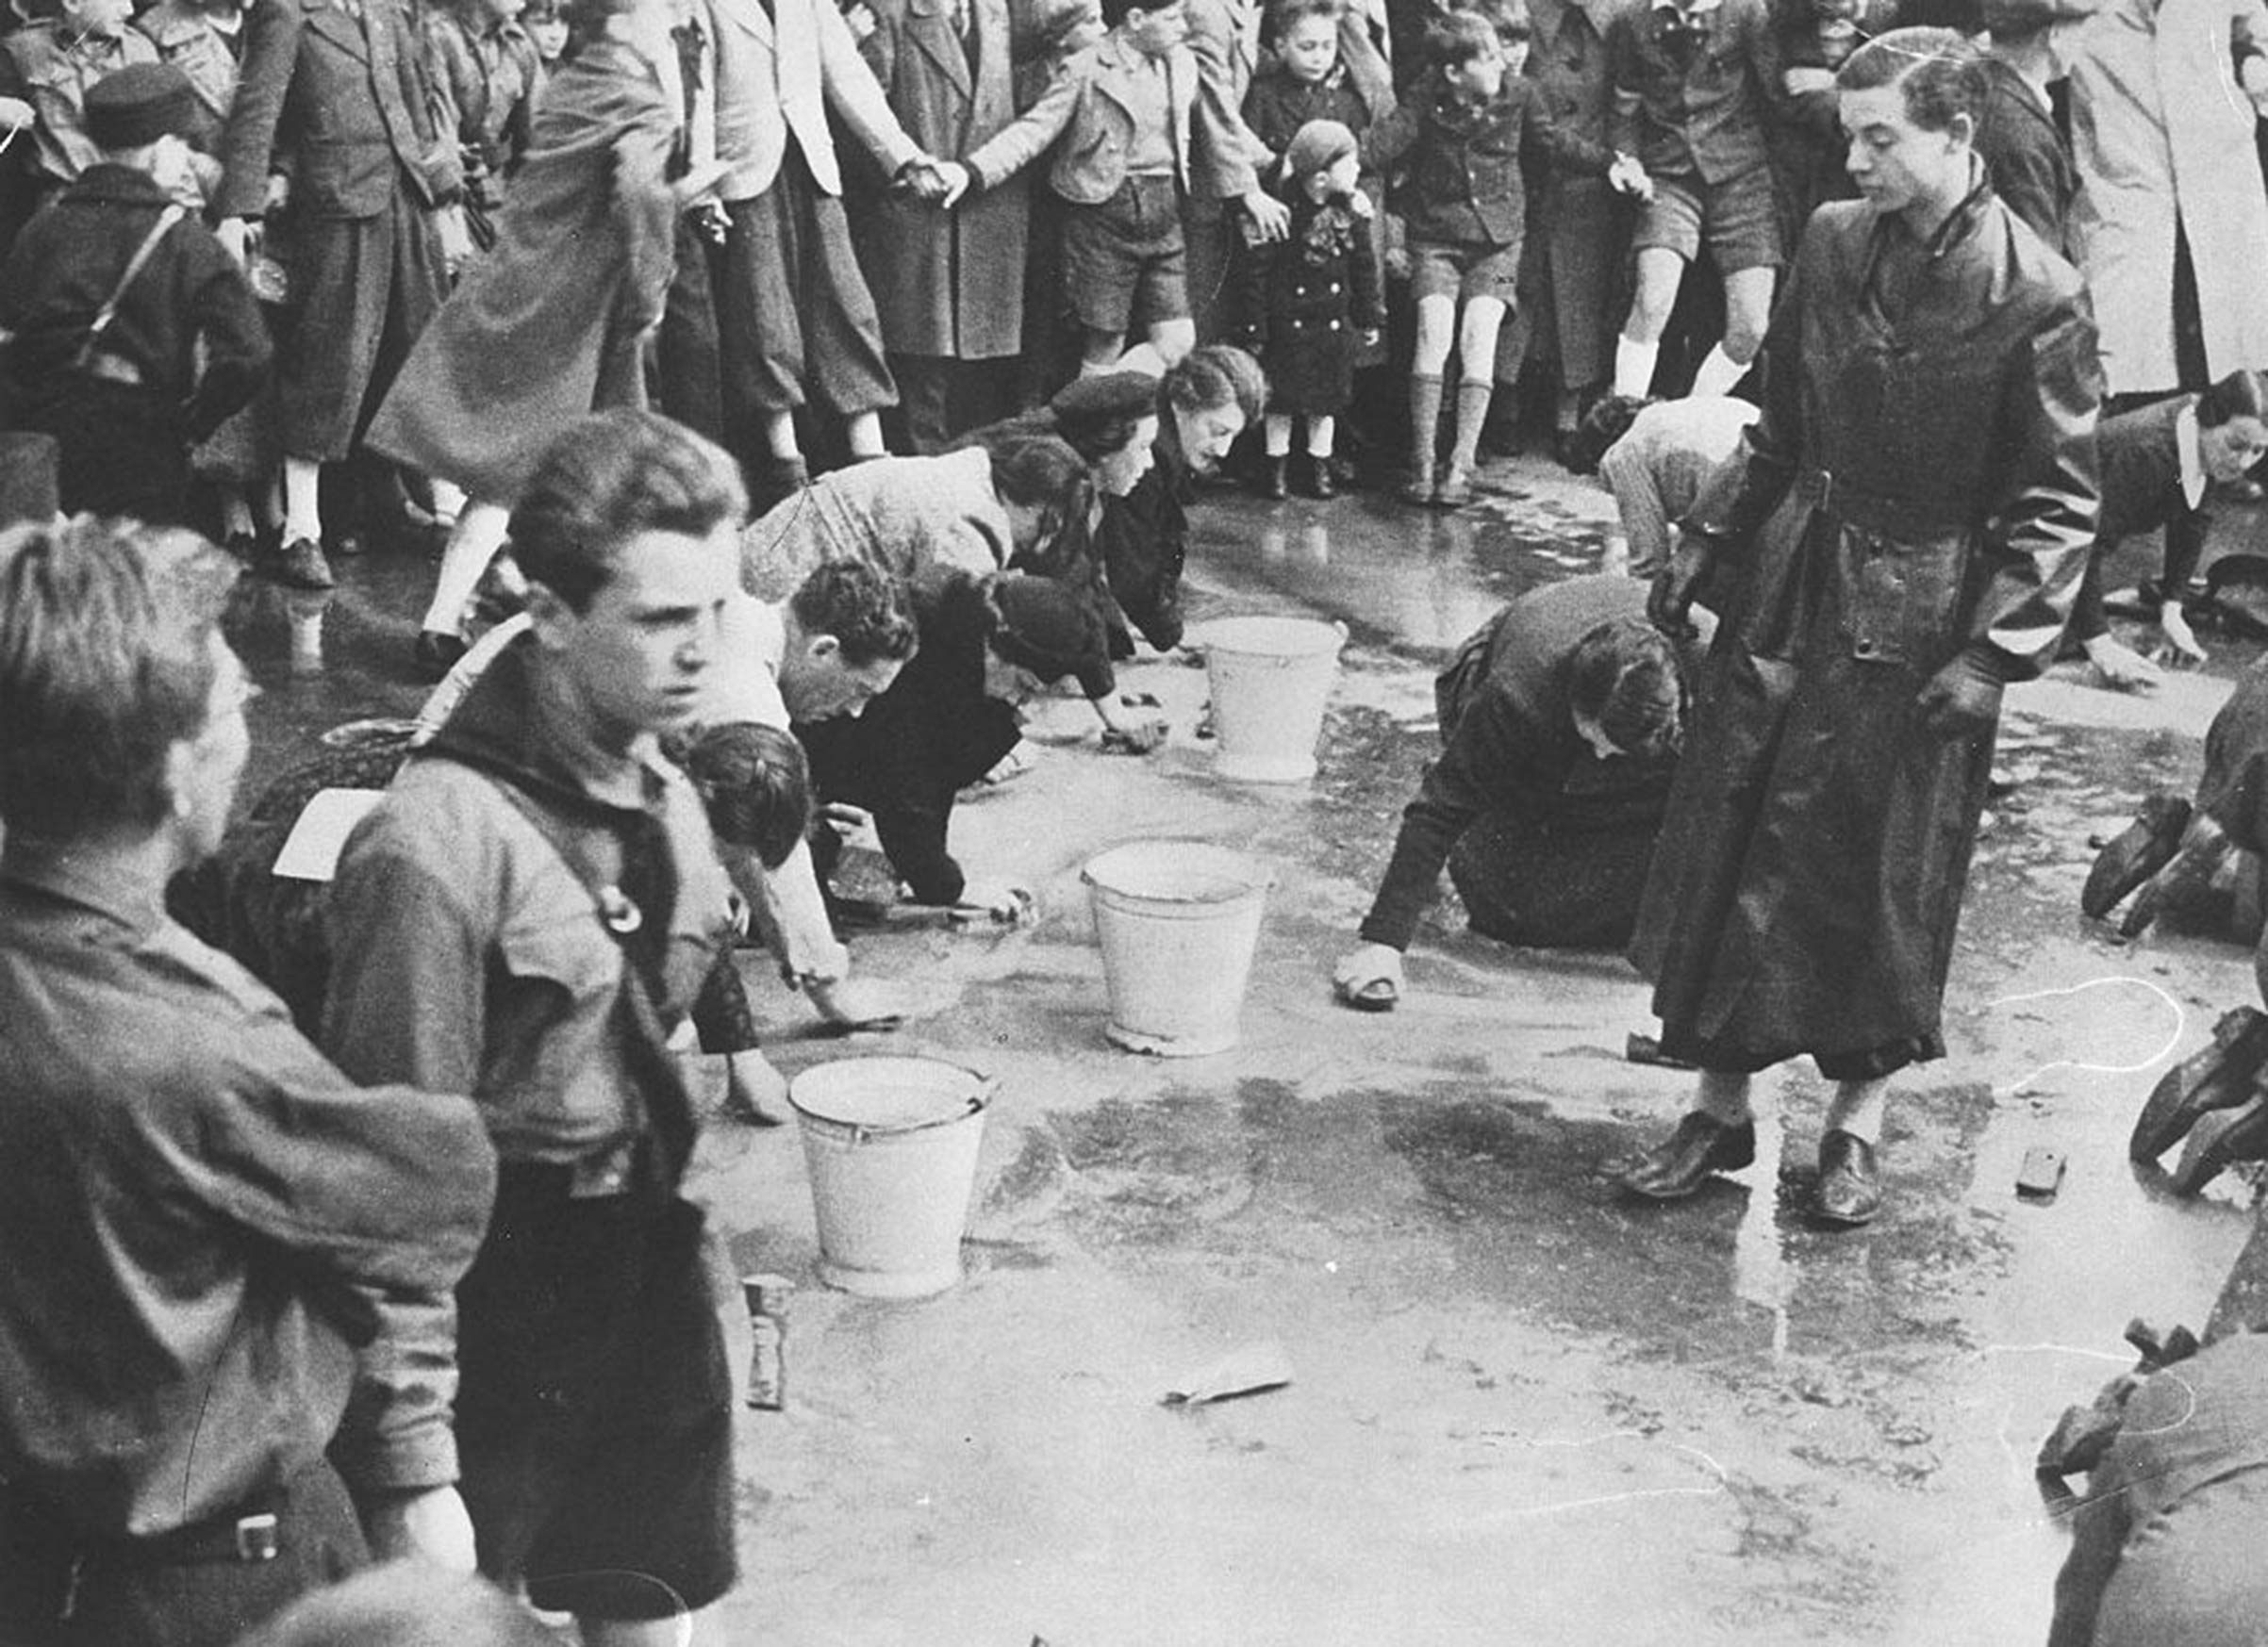 A 1938 photo of Hitler Youth members looking on as Jewish people were forced to scrub the streets in Vienna, Austria.